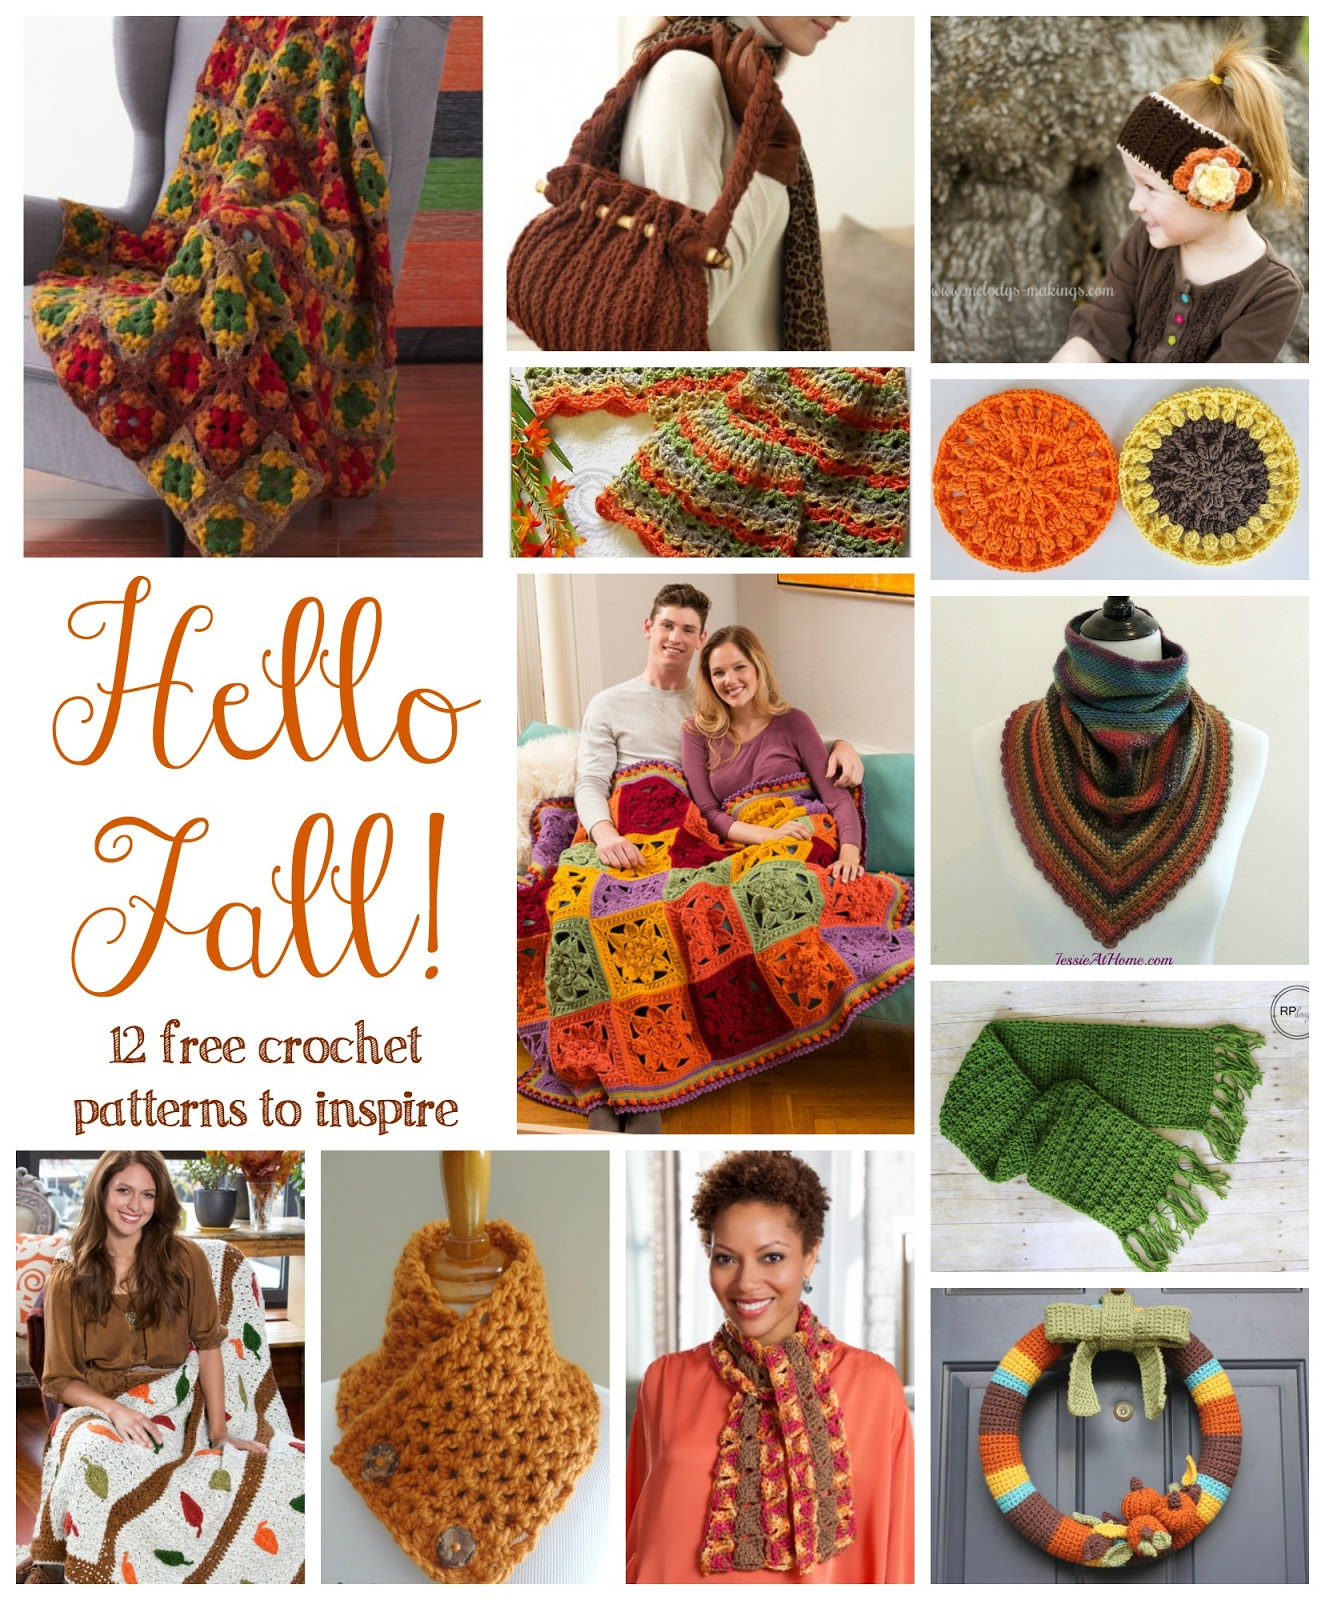 Fiber Flux Hello Fall 12 Free Crochet Patterns To Inspire